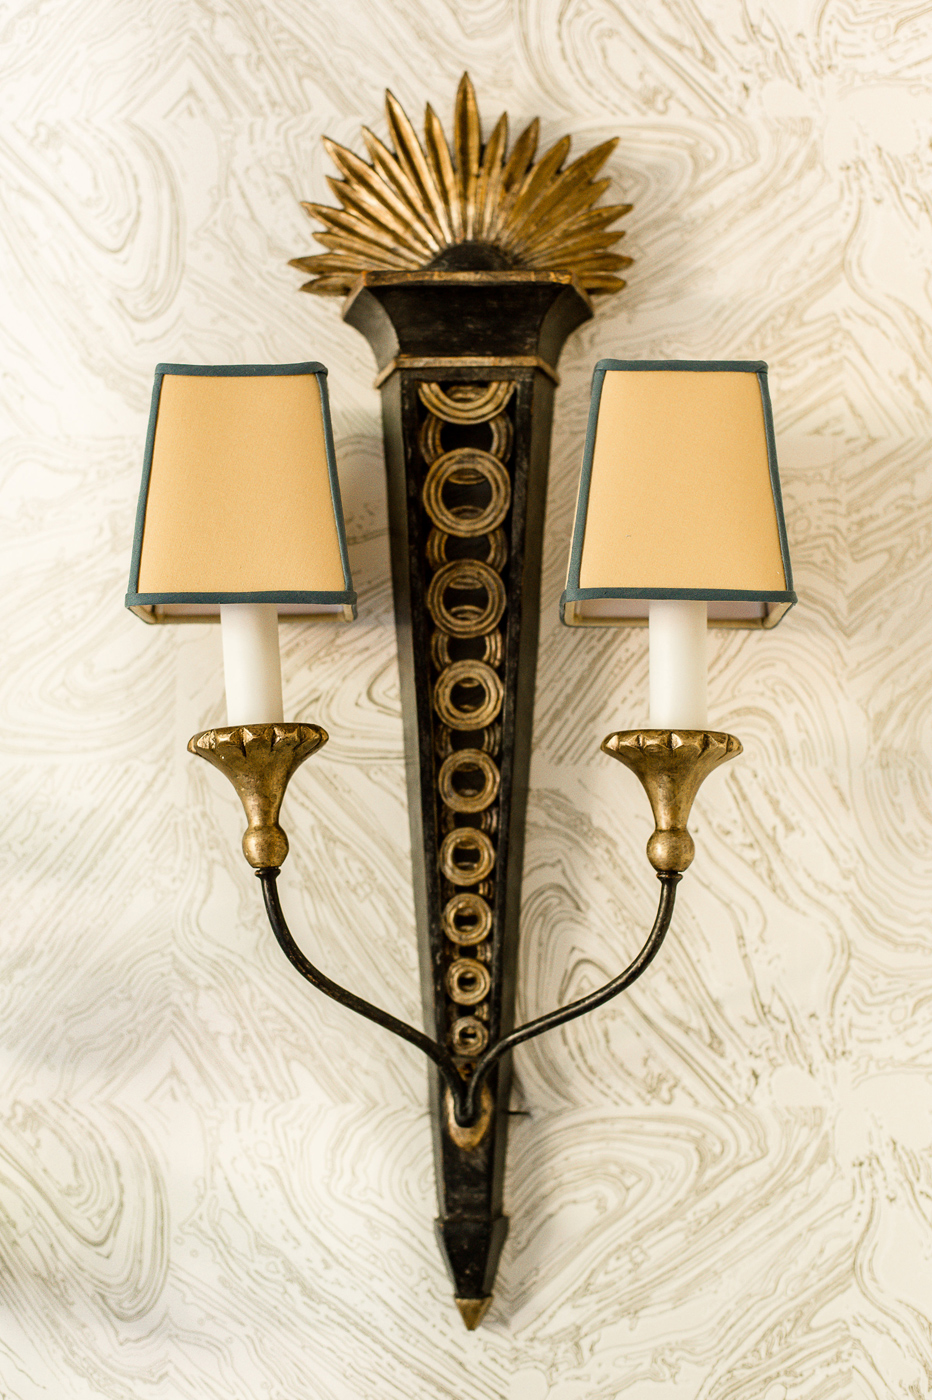 Antique sconce mounted on a swirling cream wallcovering | Savage Interior Design